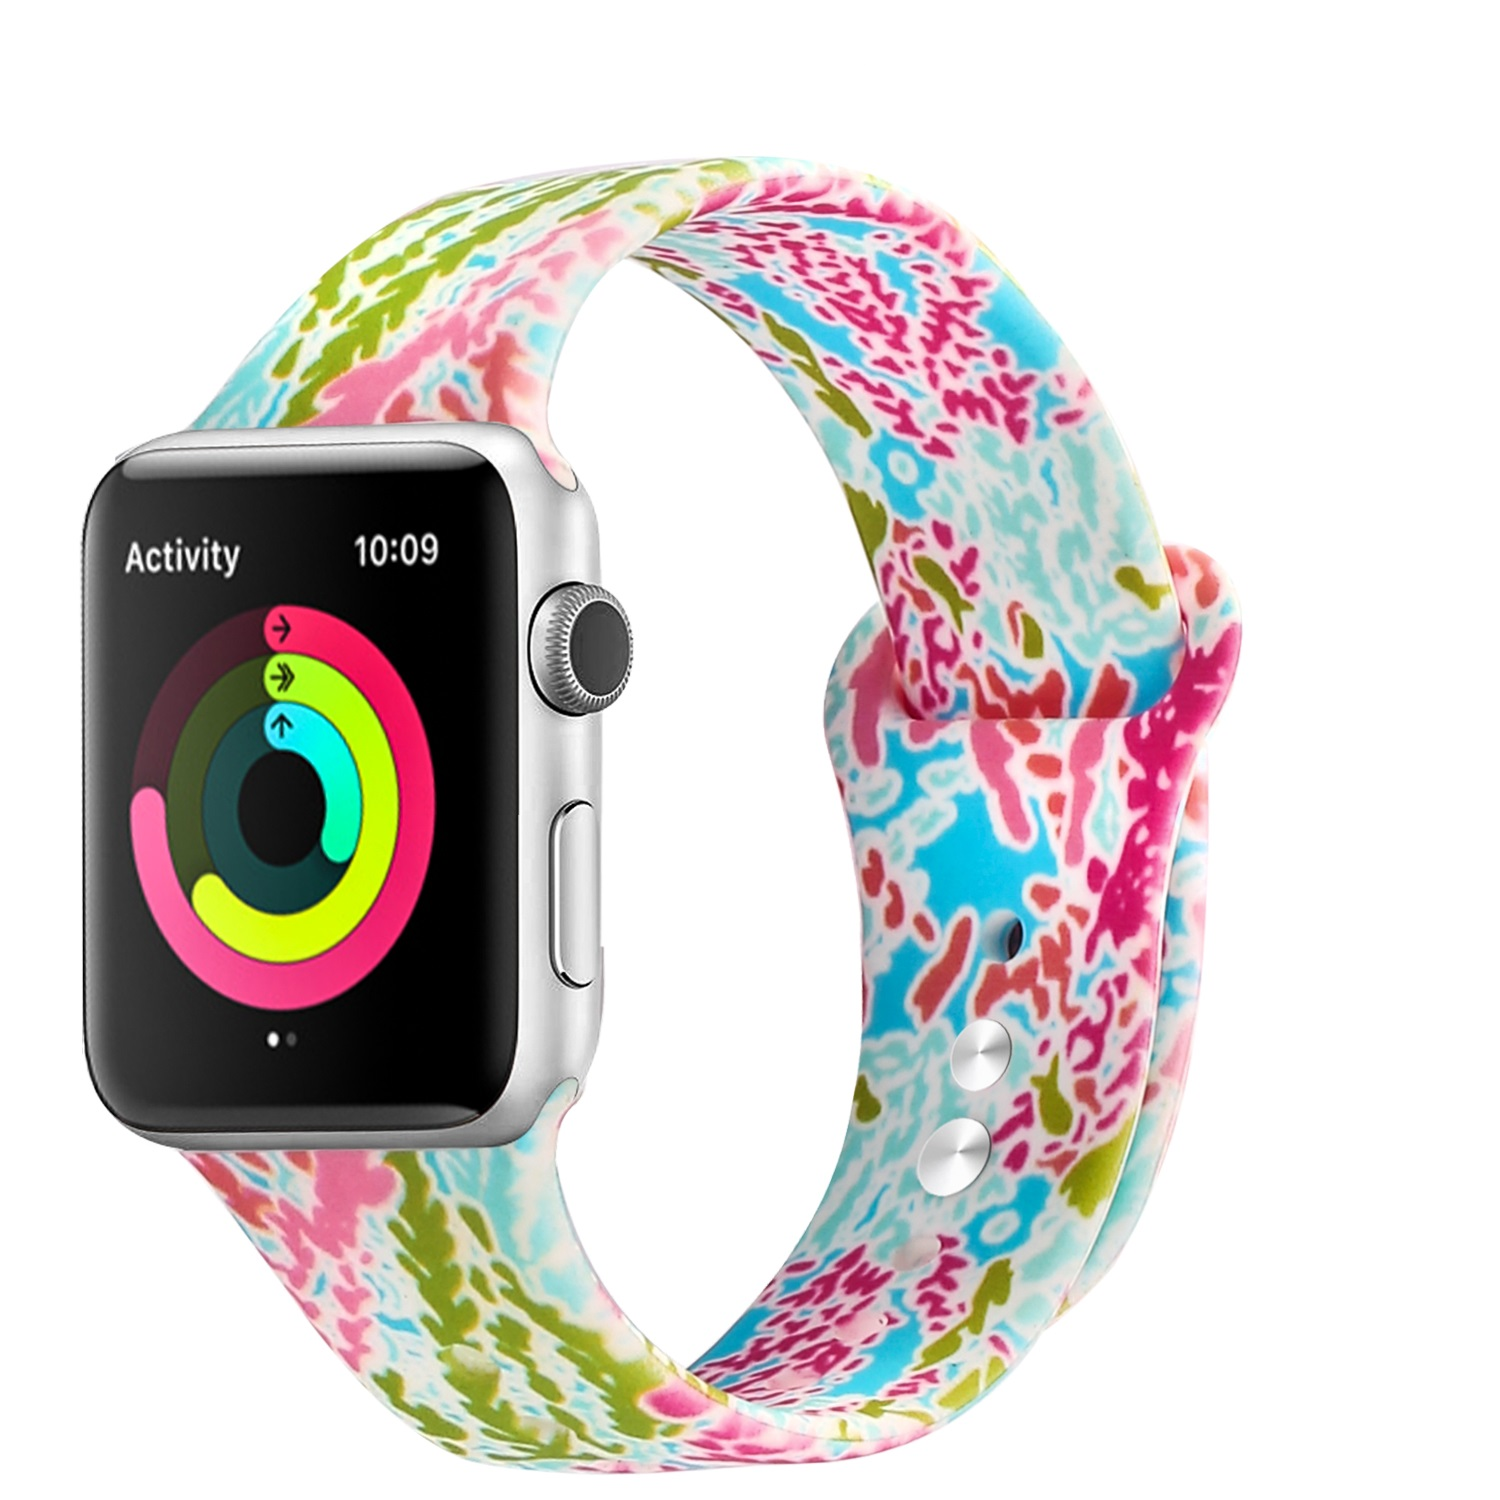 Lilly Pulitzer Inspired Watch Rubber Strap For Apple Watch Band Strap For iWatch Silicon Band фото